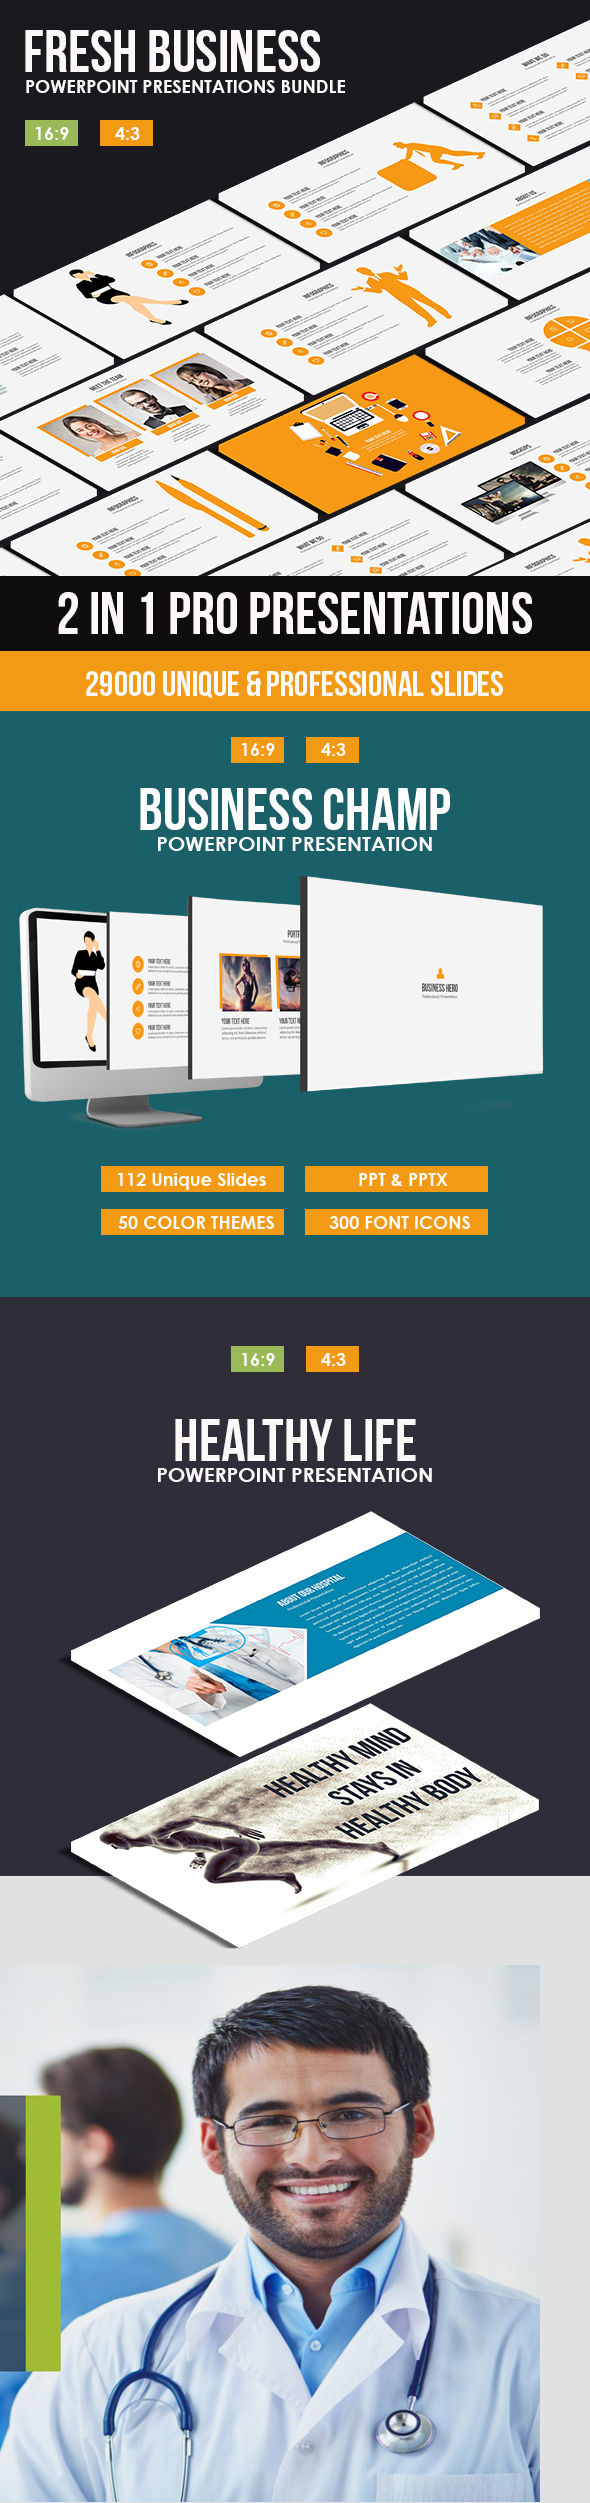 Fresh Business Powerpoint Bundle - Business PowerPoint Templates